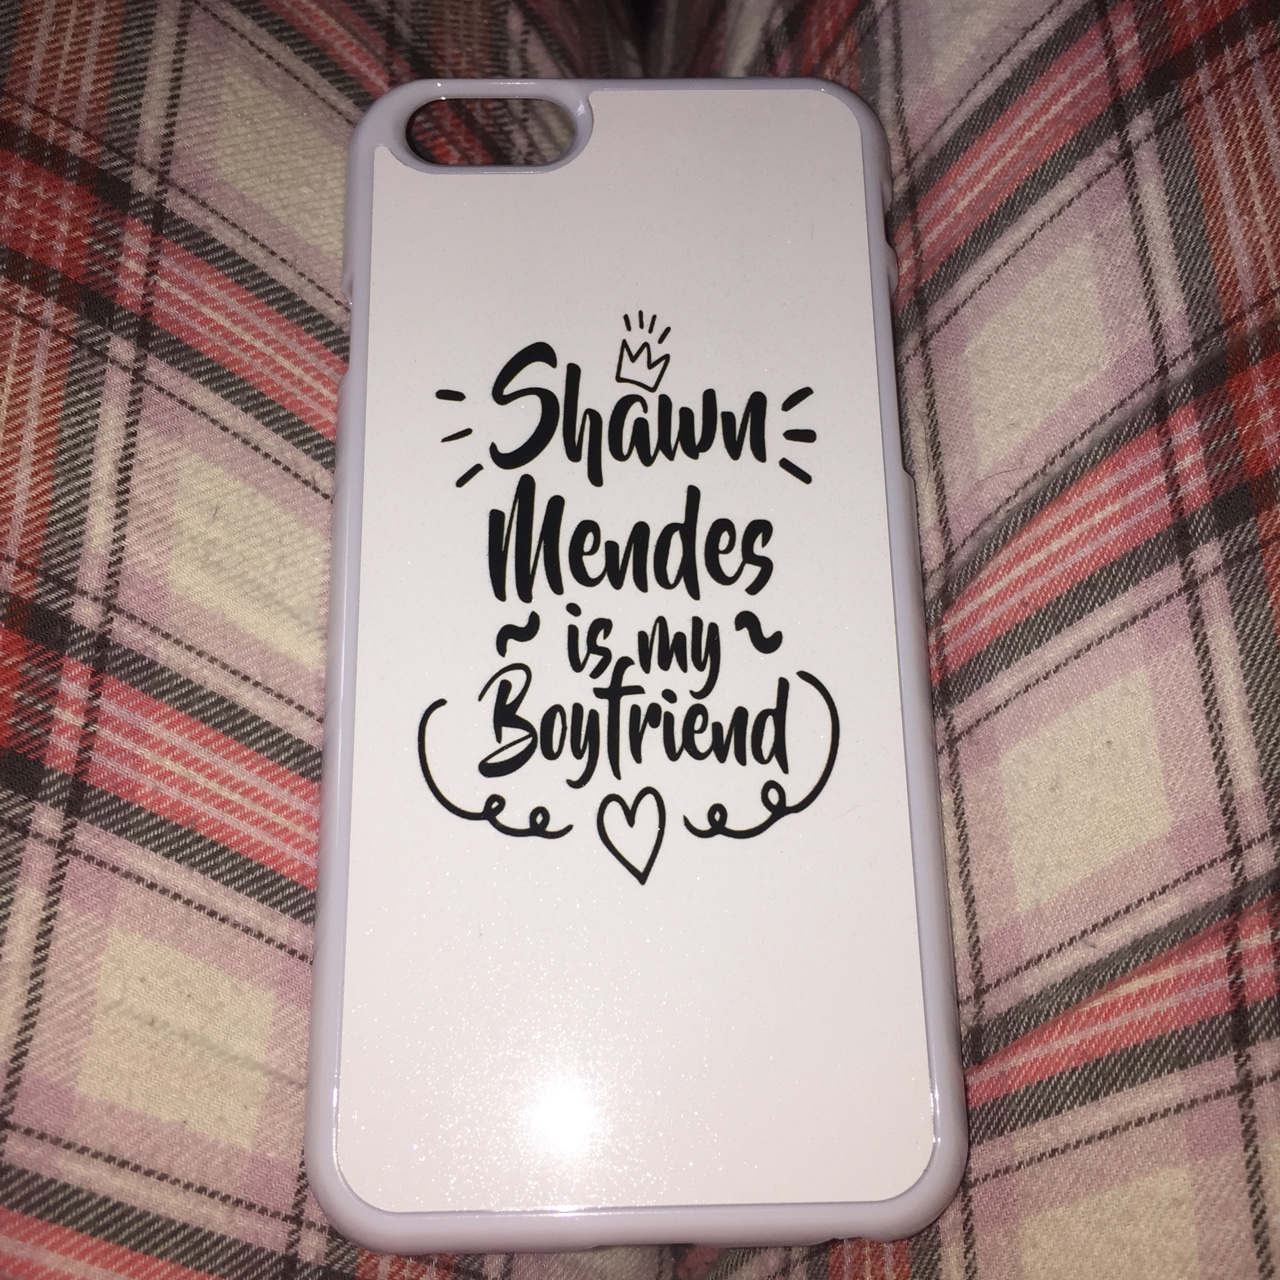 new concept 40dd6 d627c Shawn mendes phone case iPhone 6 or 6s phone... - Depop